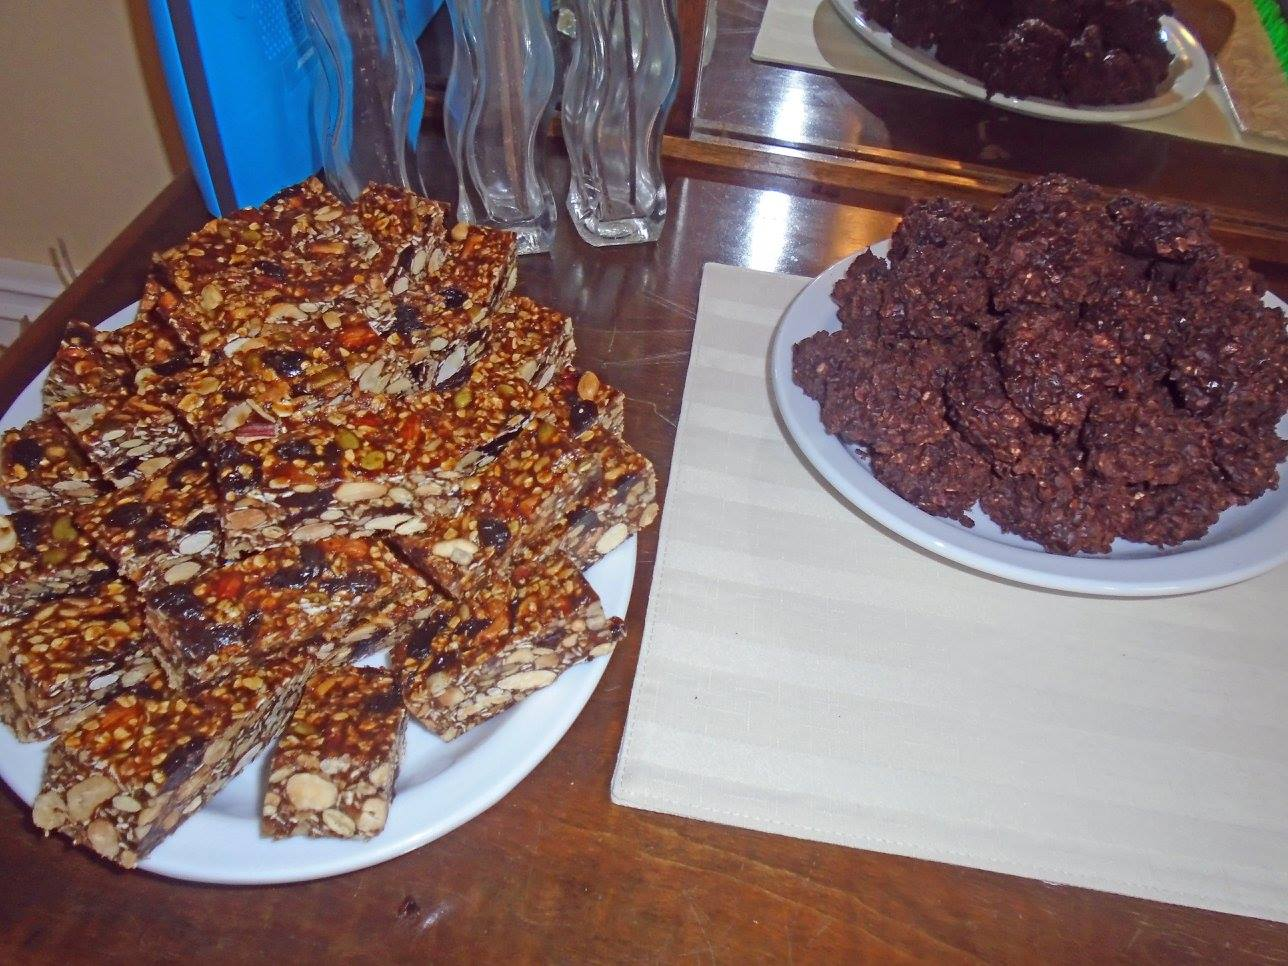 Some of the unbelievably tasty treats from the anniversary party ...